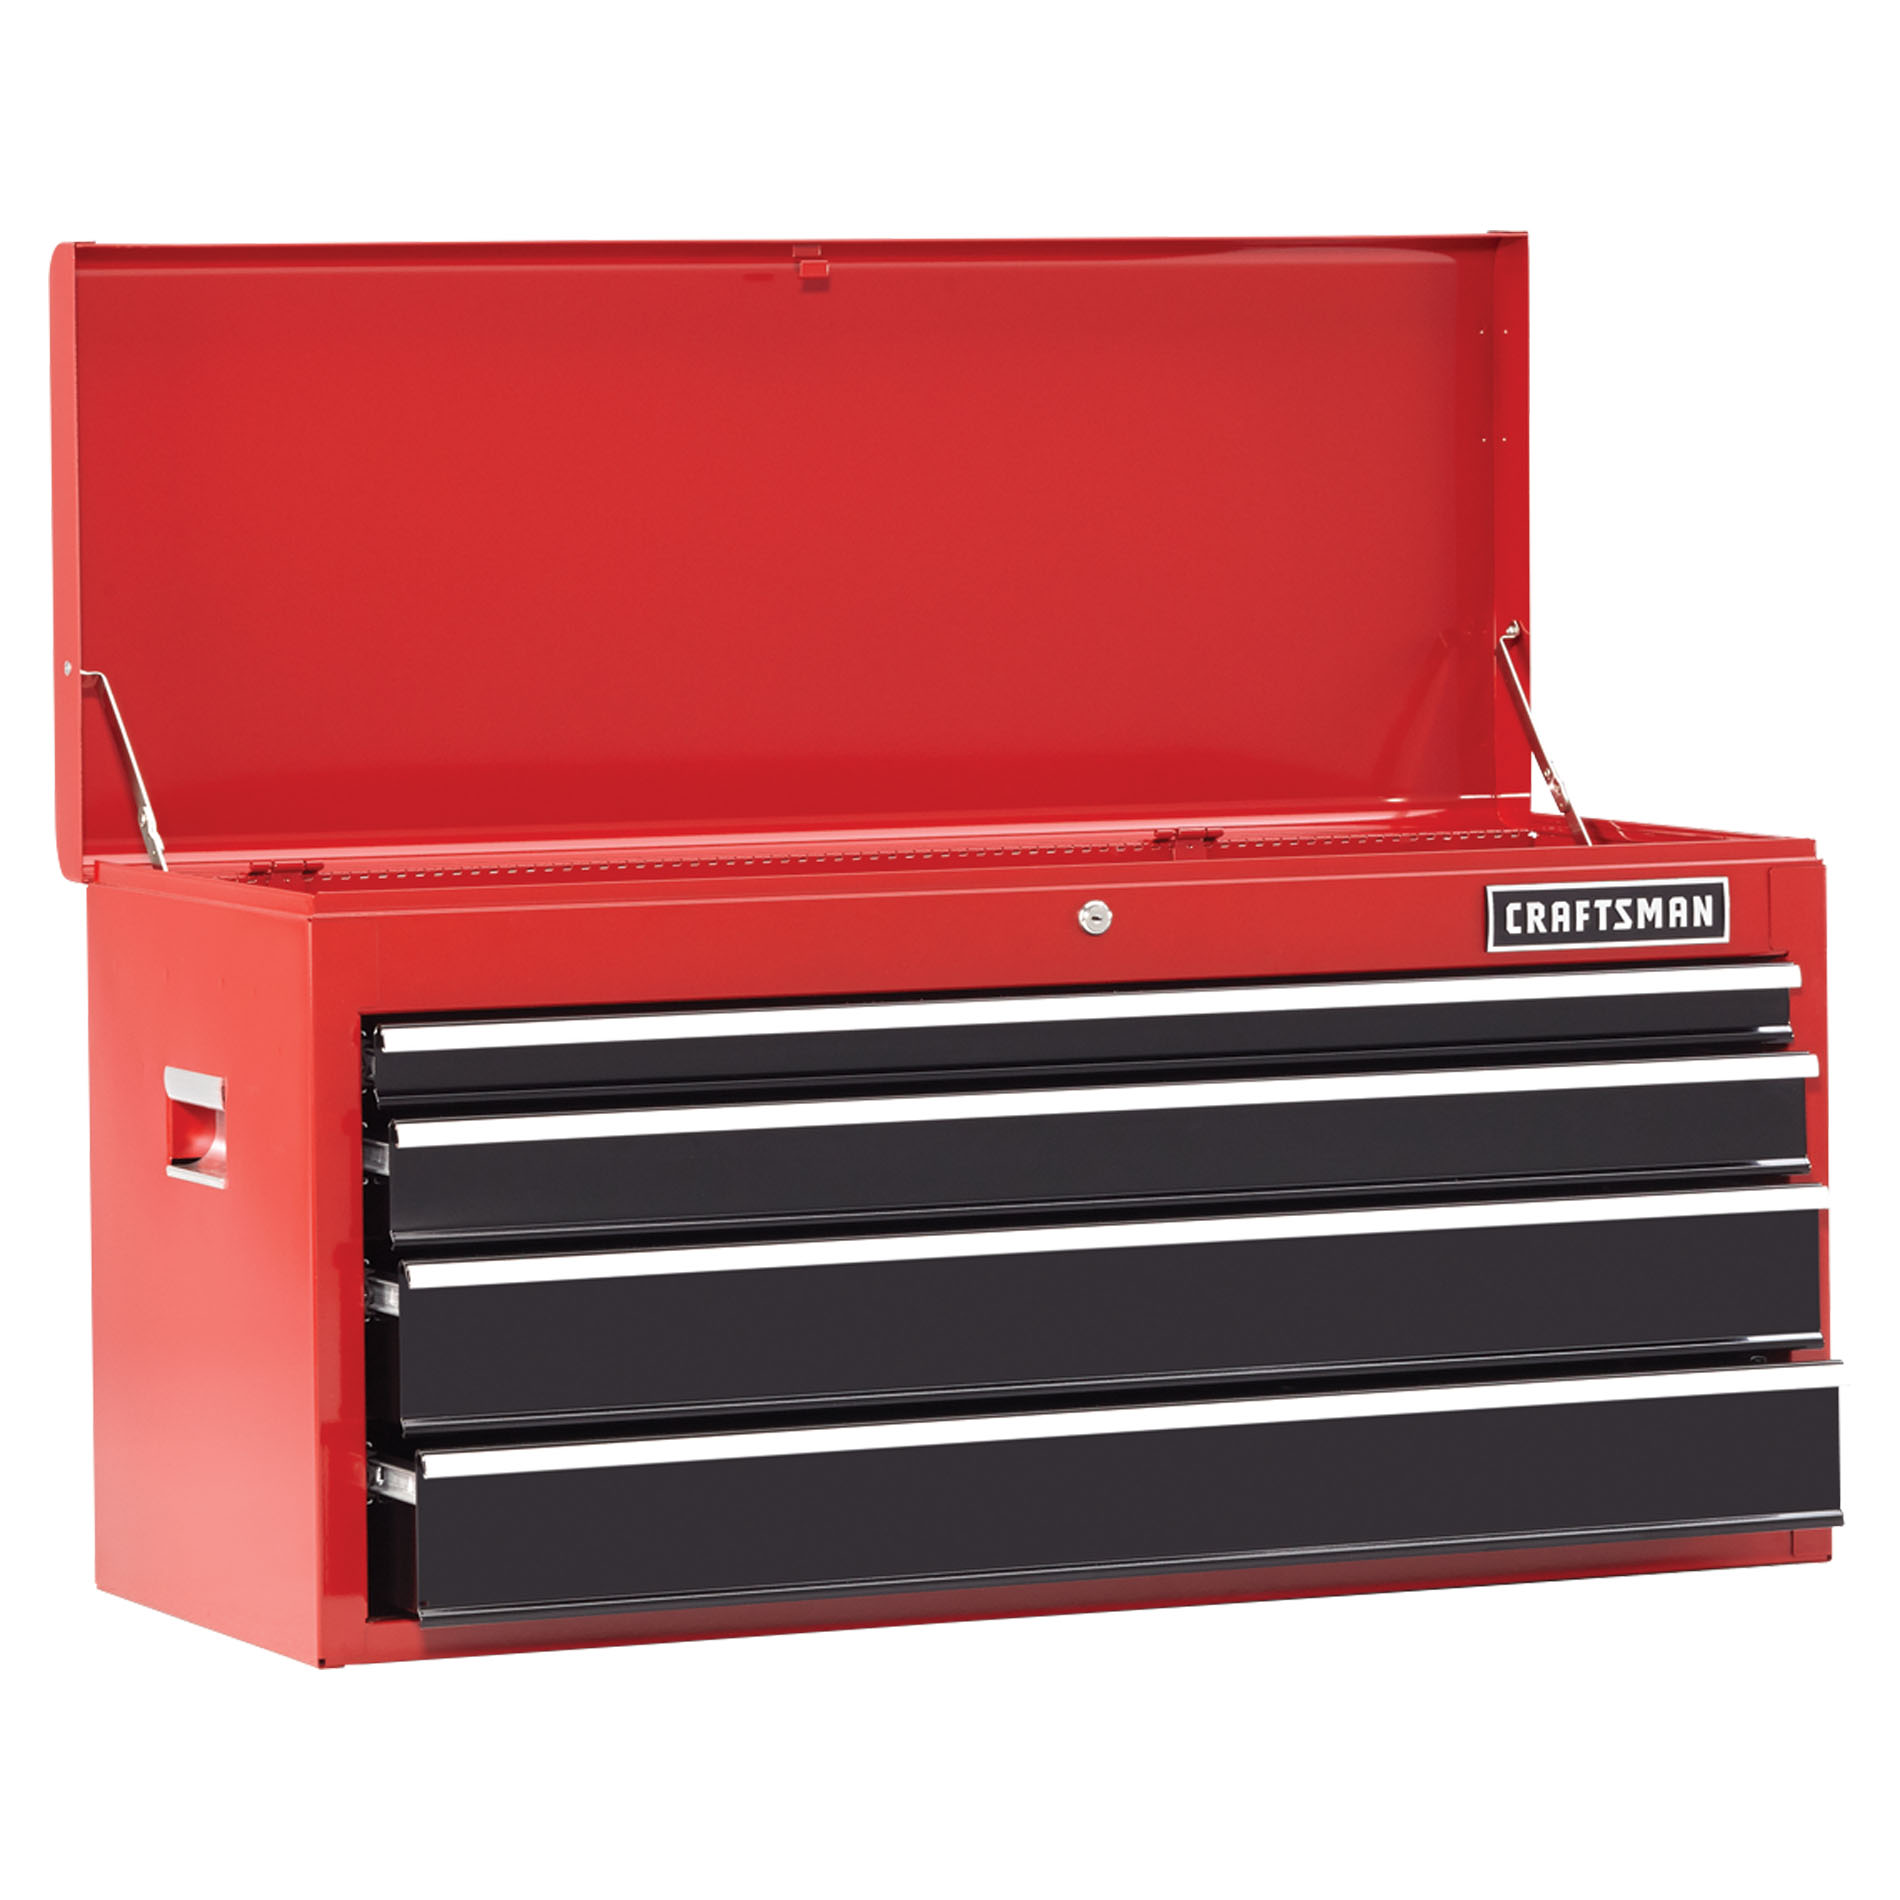 "Craftsman 41"""" 4-Drawer Heavy-Duty Top Chest - Red"